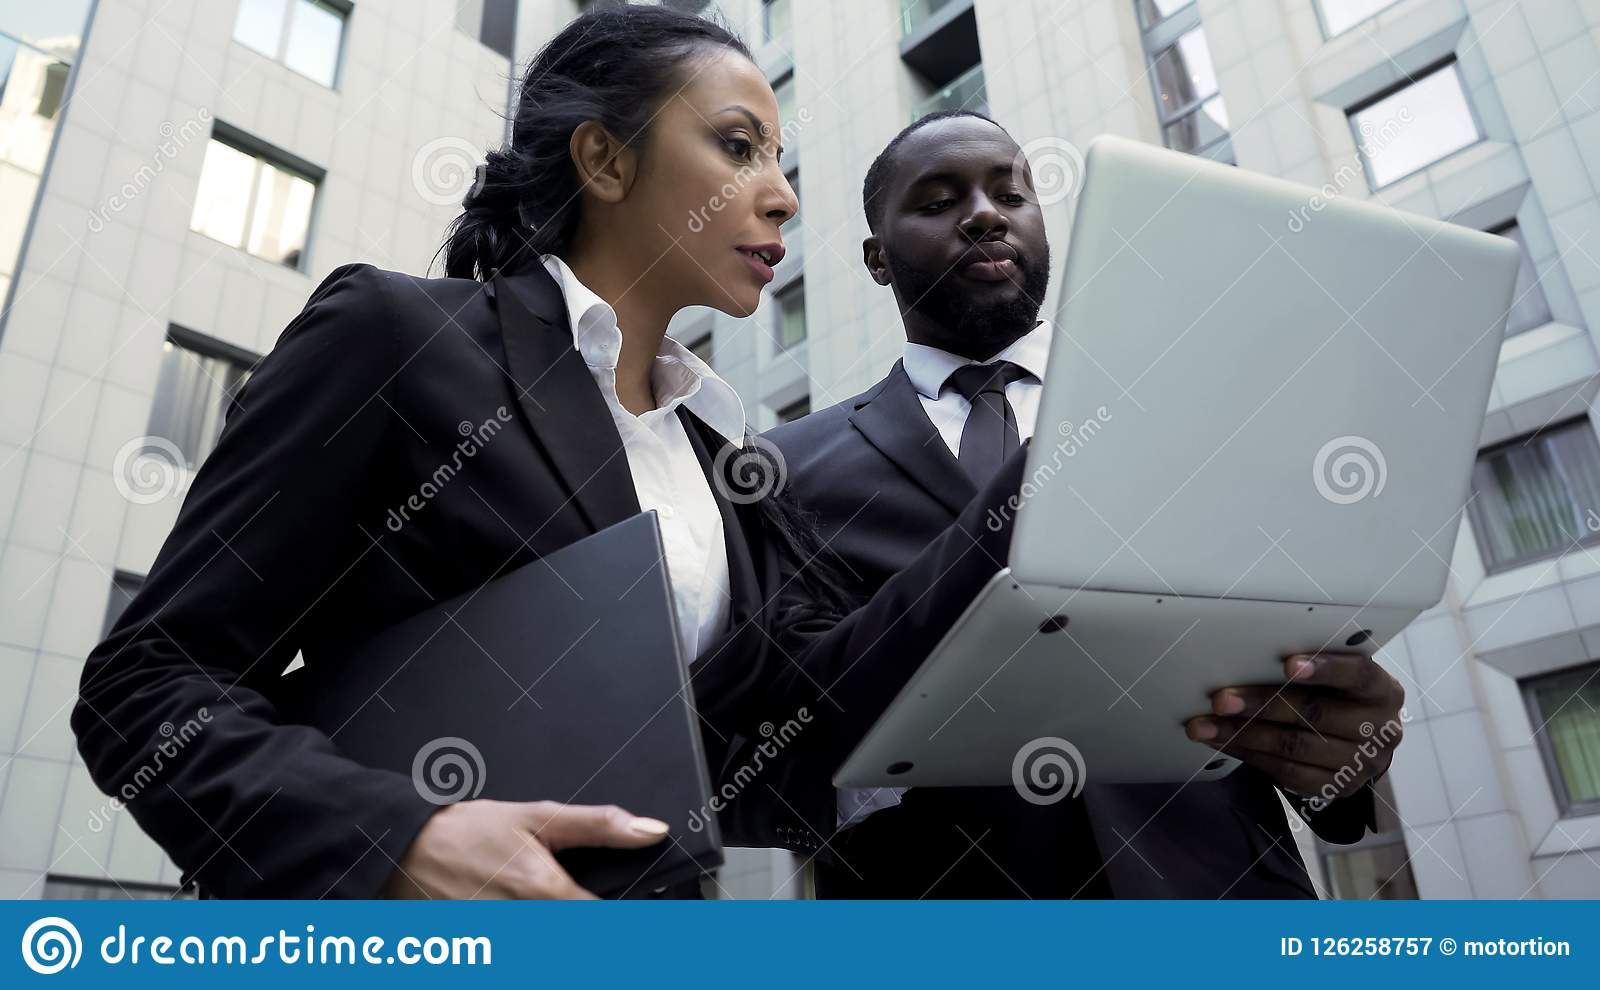 Man and woman looking at laptop outside building, attorneys, brand new evidence